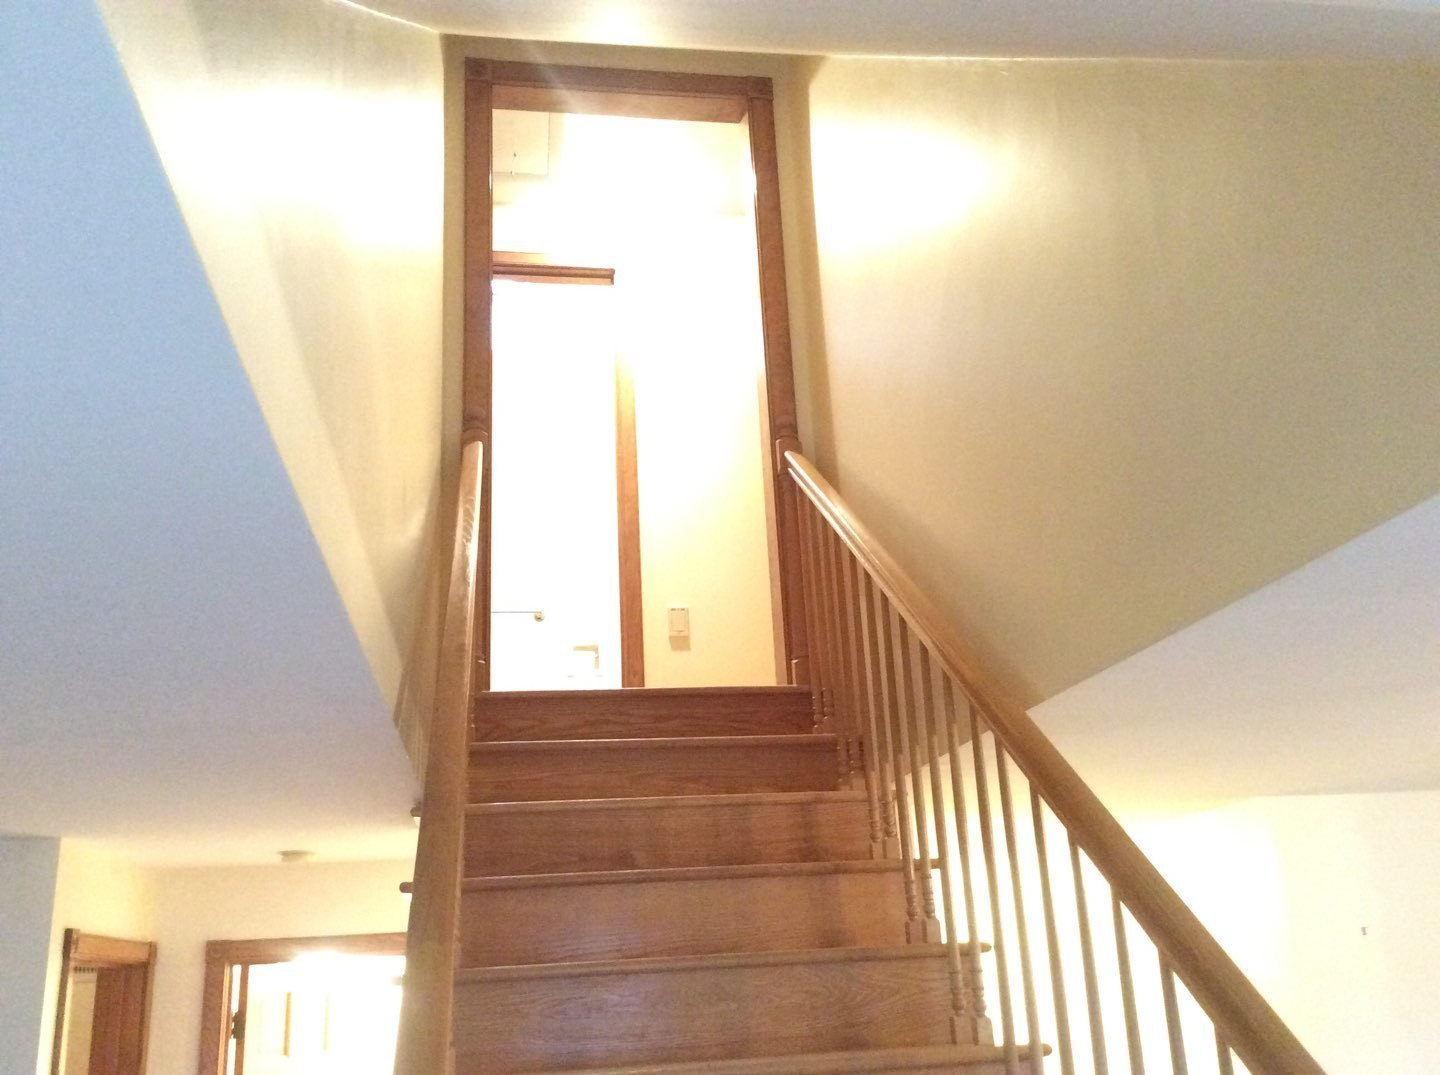 Stairway Painted After Wallpaper Removal in Eastham